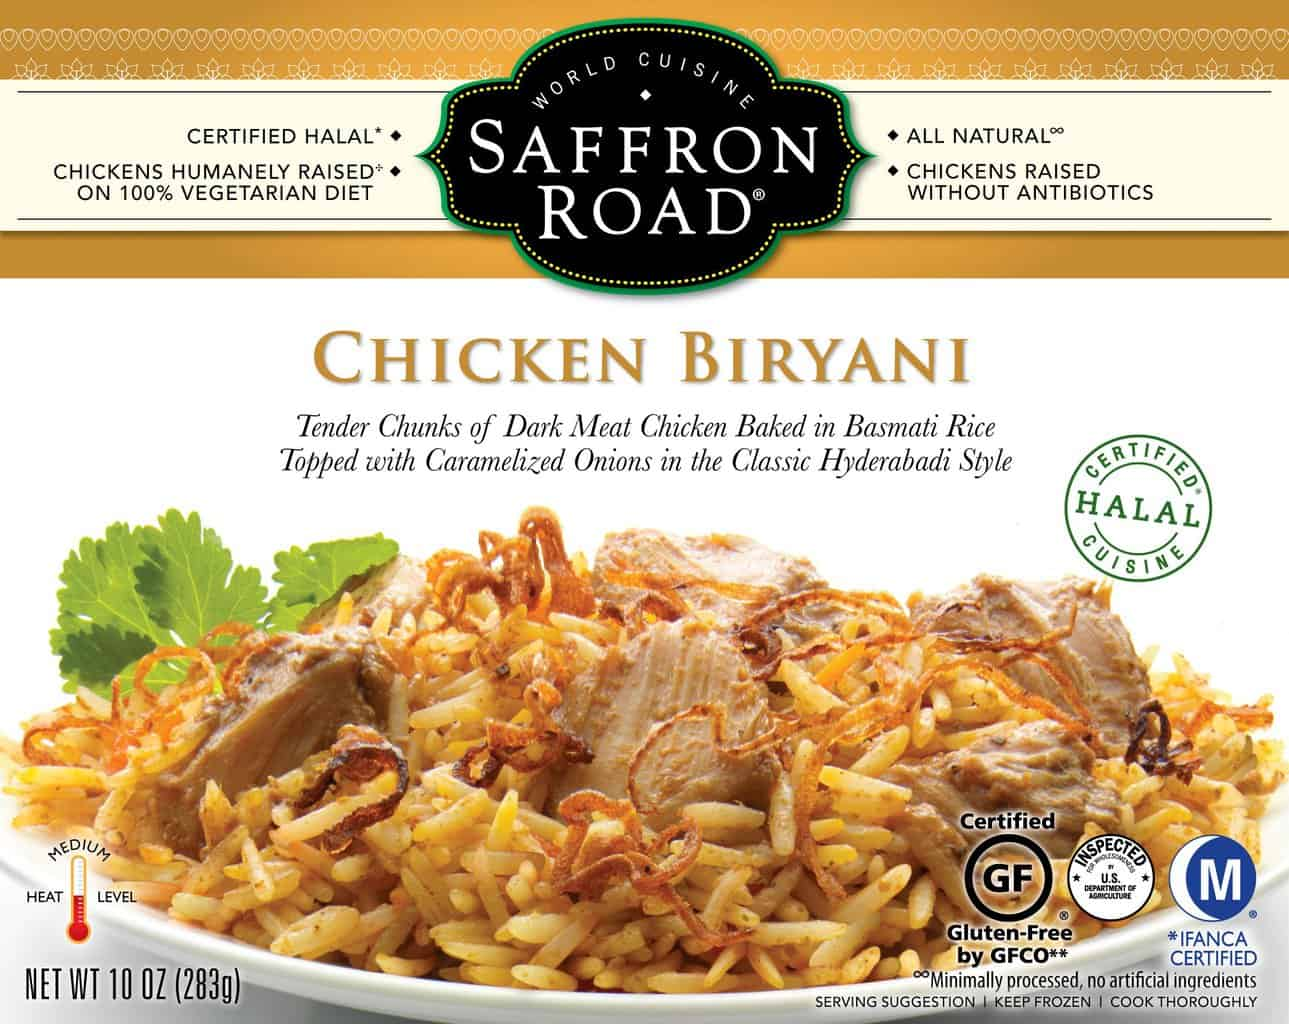 American Made Gluten-Free Snacks and Meals from USALoveListlcom including Saffron Road Entrees Reviewed